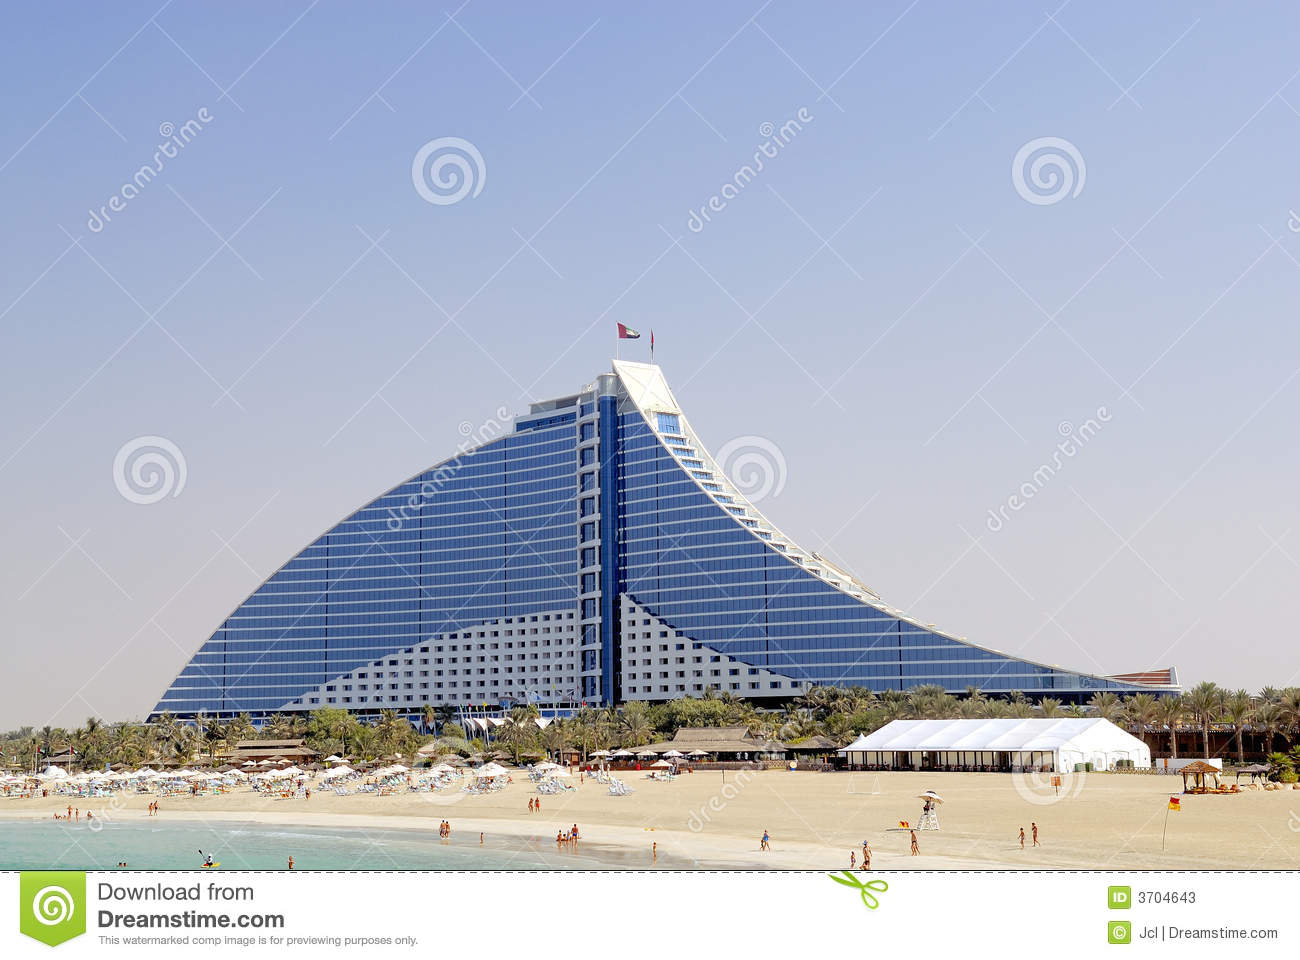 Dubai hotel stock photos image 3704643 for Dubai hotels near beach